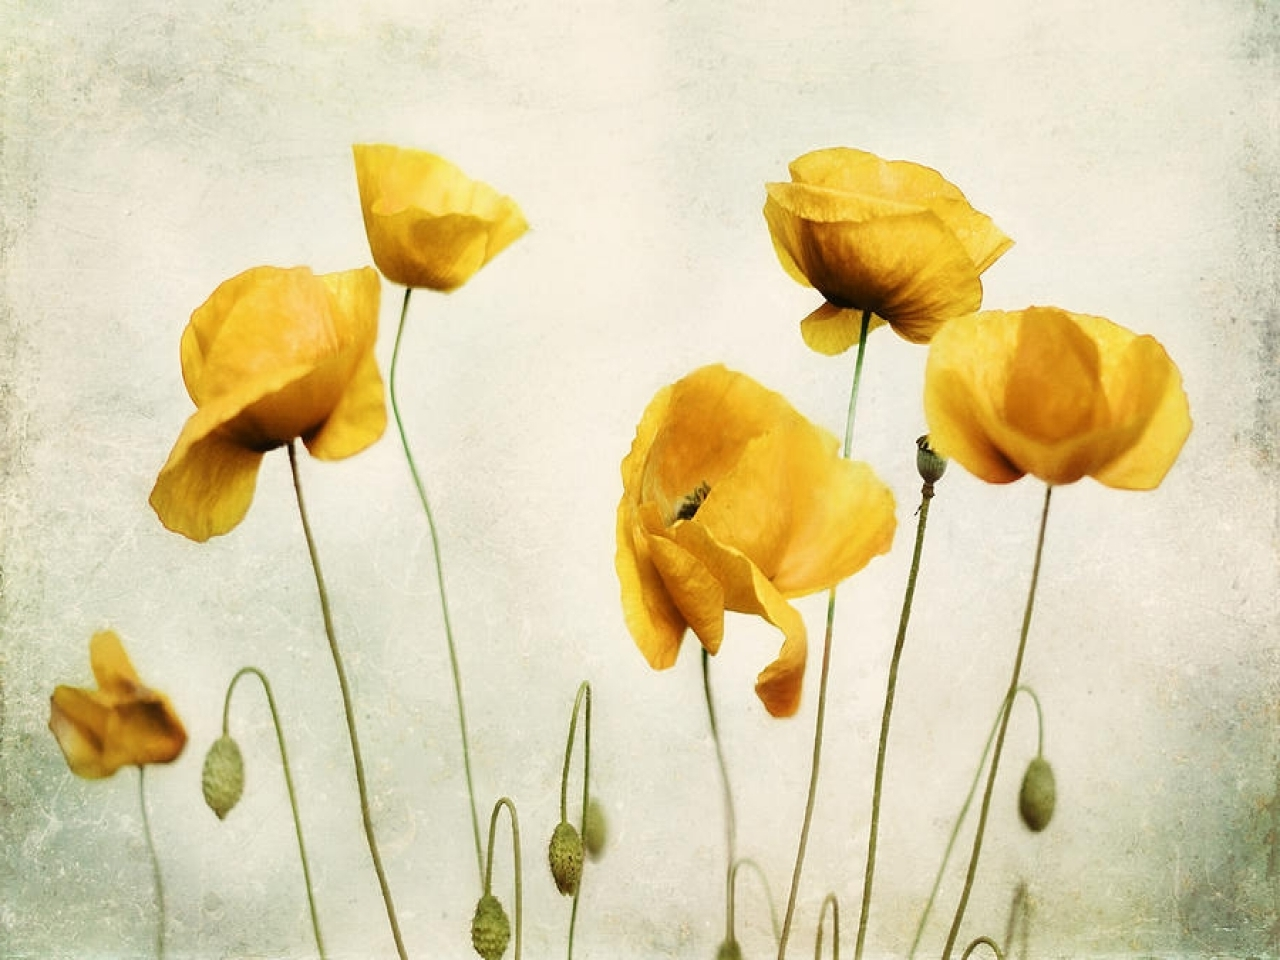 Wall Art Designs: Poppy Wall Art Yellow Poppy Yellow Poppies Wall Pertaining To 2017 Metal Poppy Wall Art (View 14 of 15)